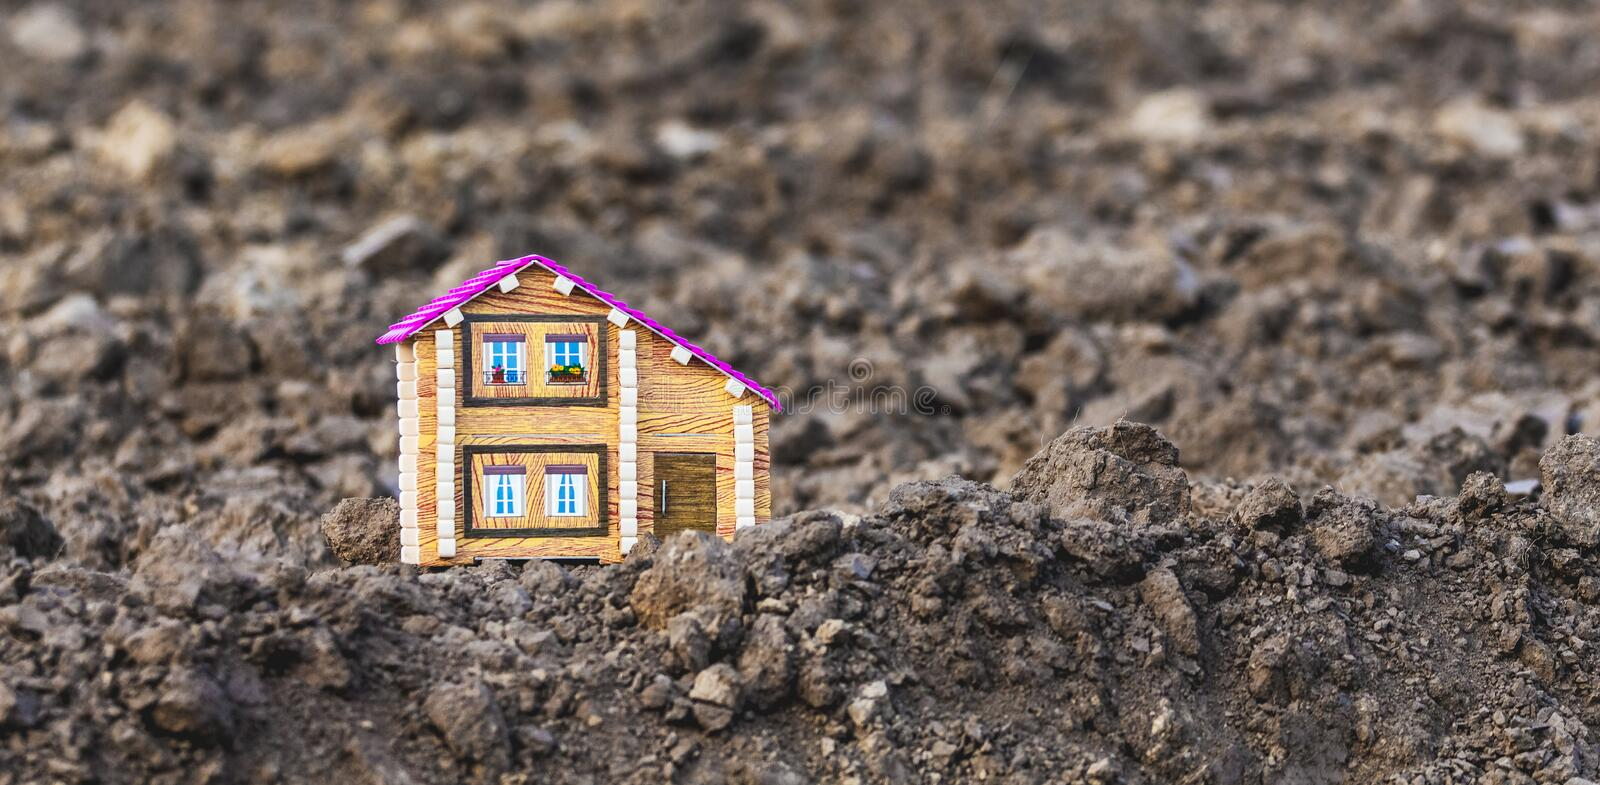 Lonely house in a field. Life outside of civilization. Development of new lands. The first new building_ stock image